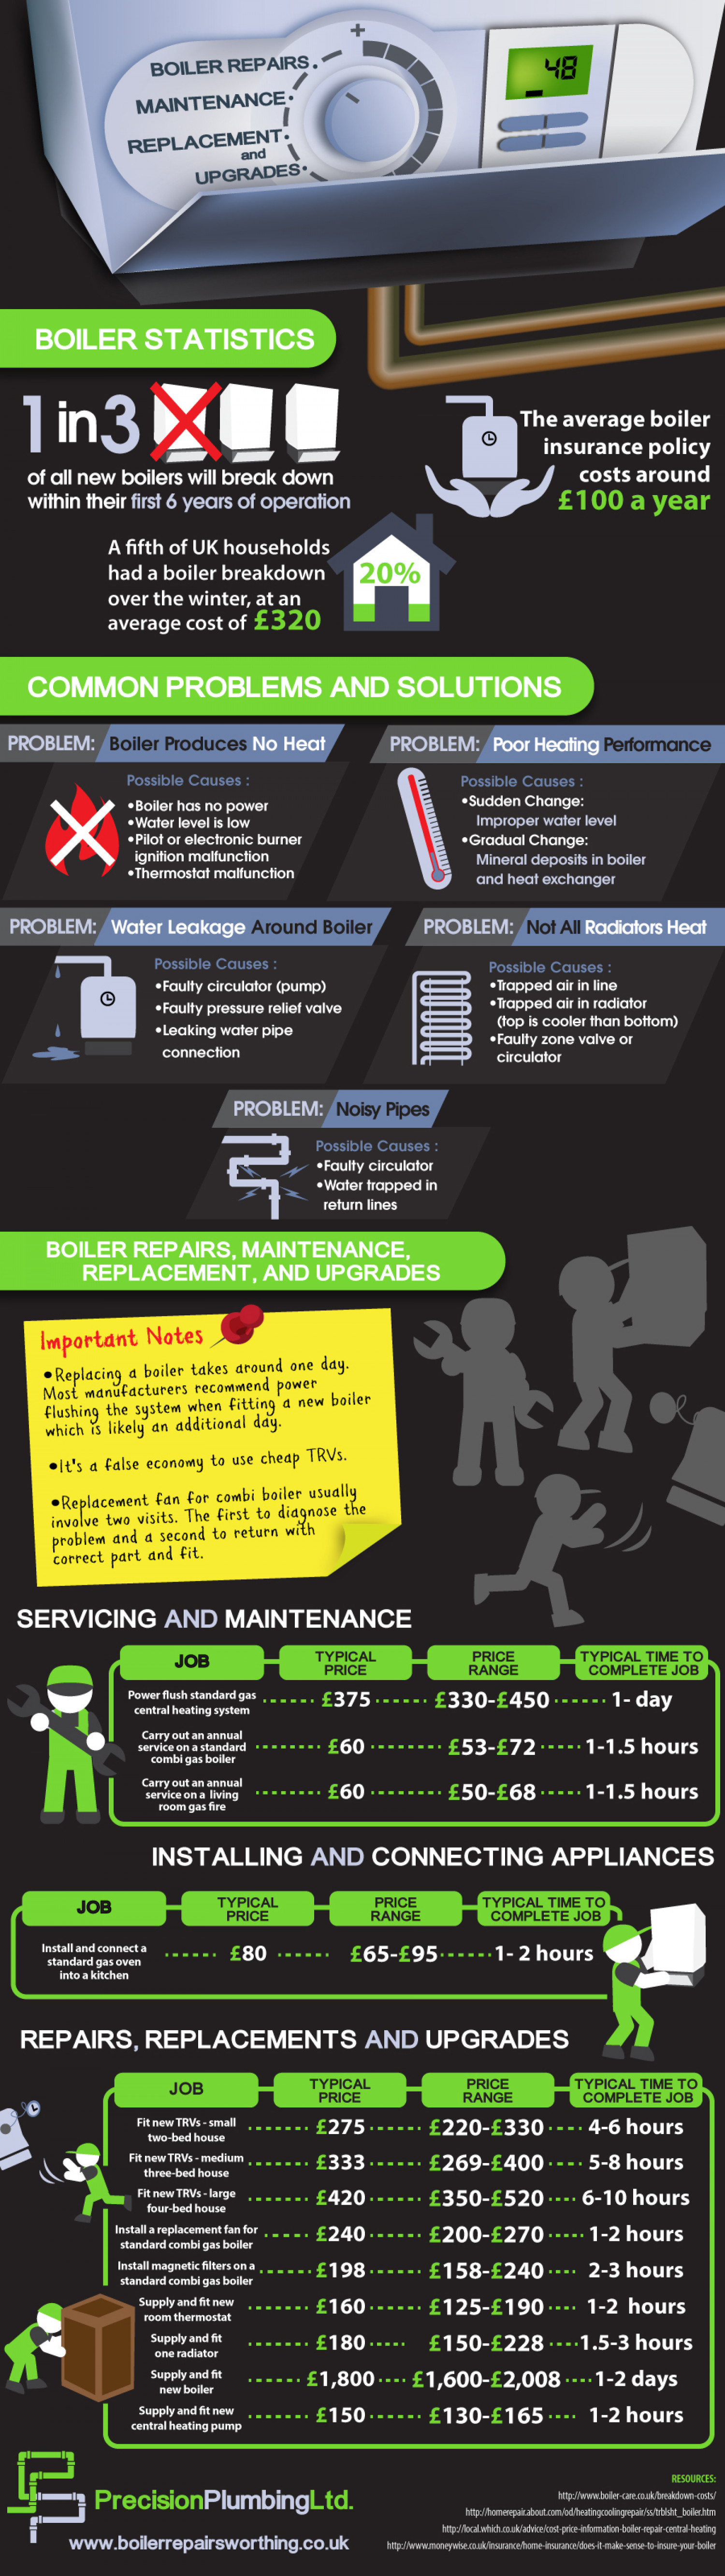 Boiler Repairs, Maintenance, Replacement, and Upgrades Infographic